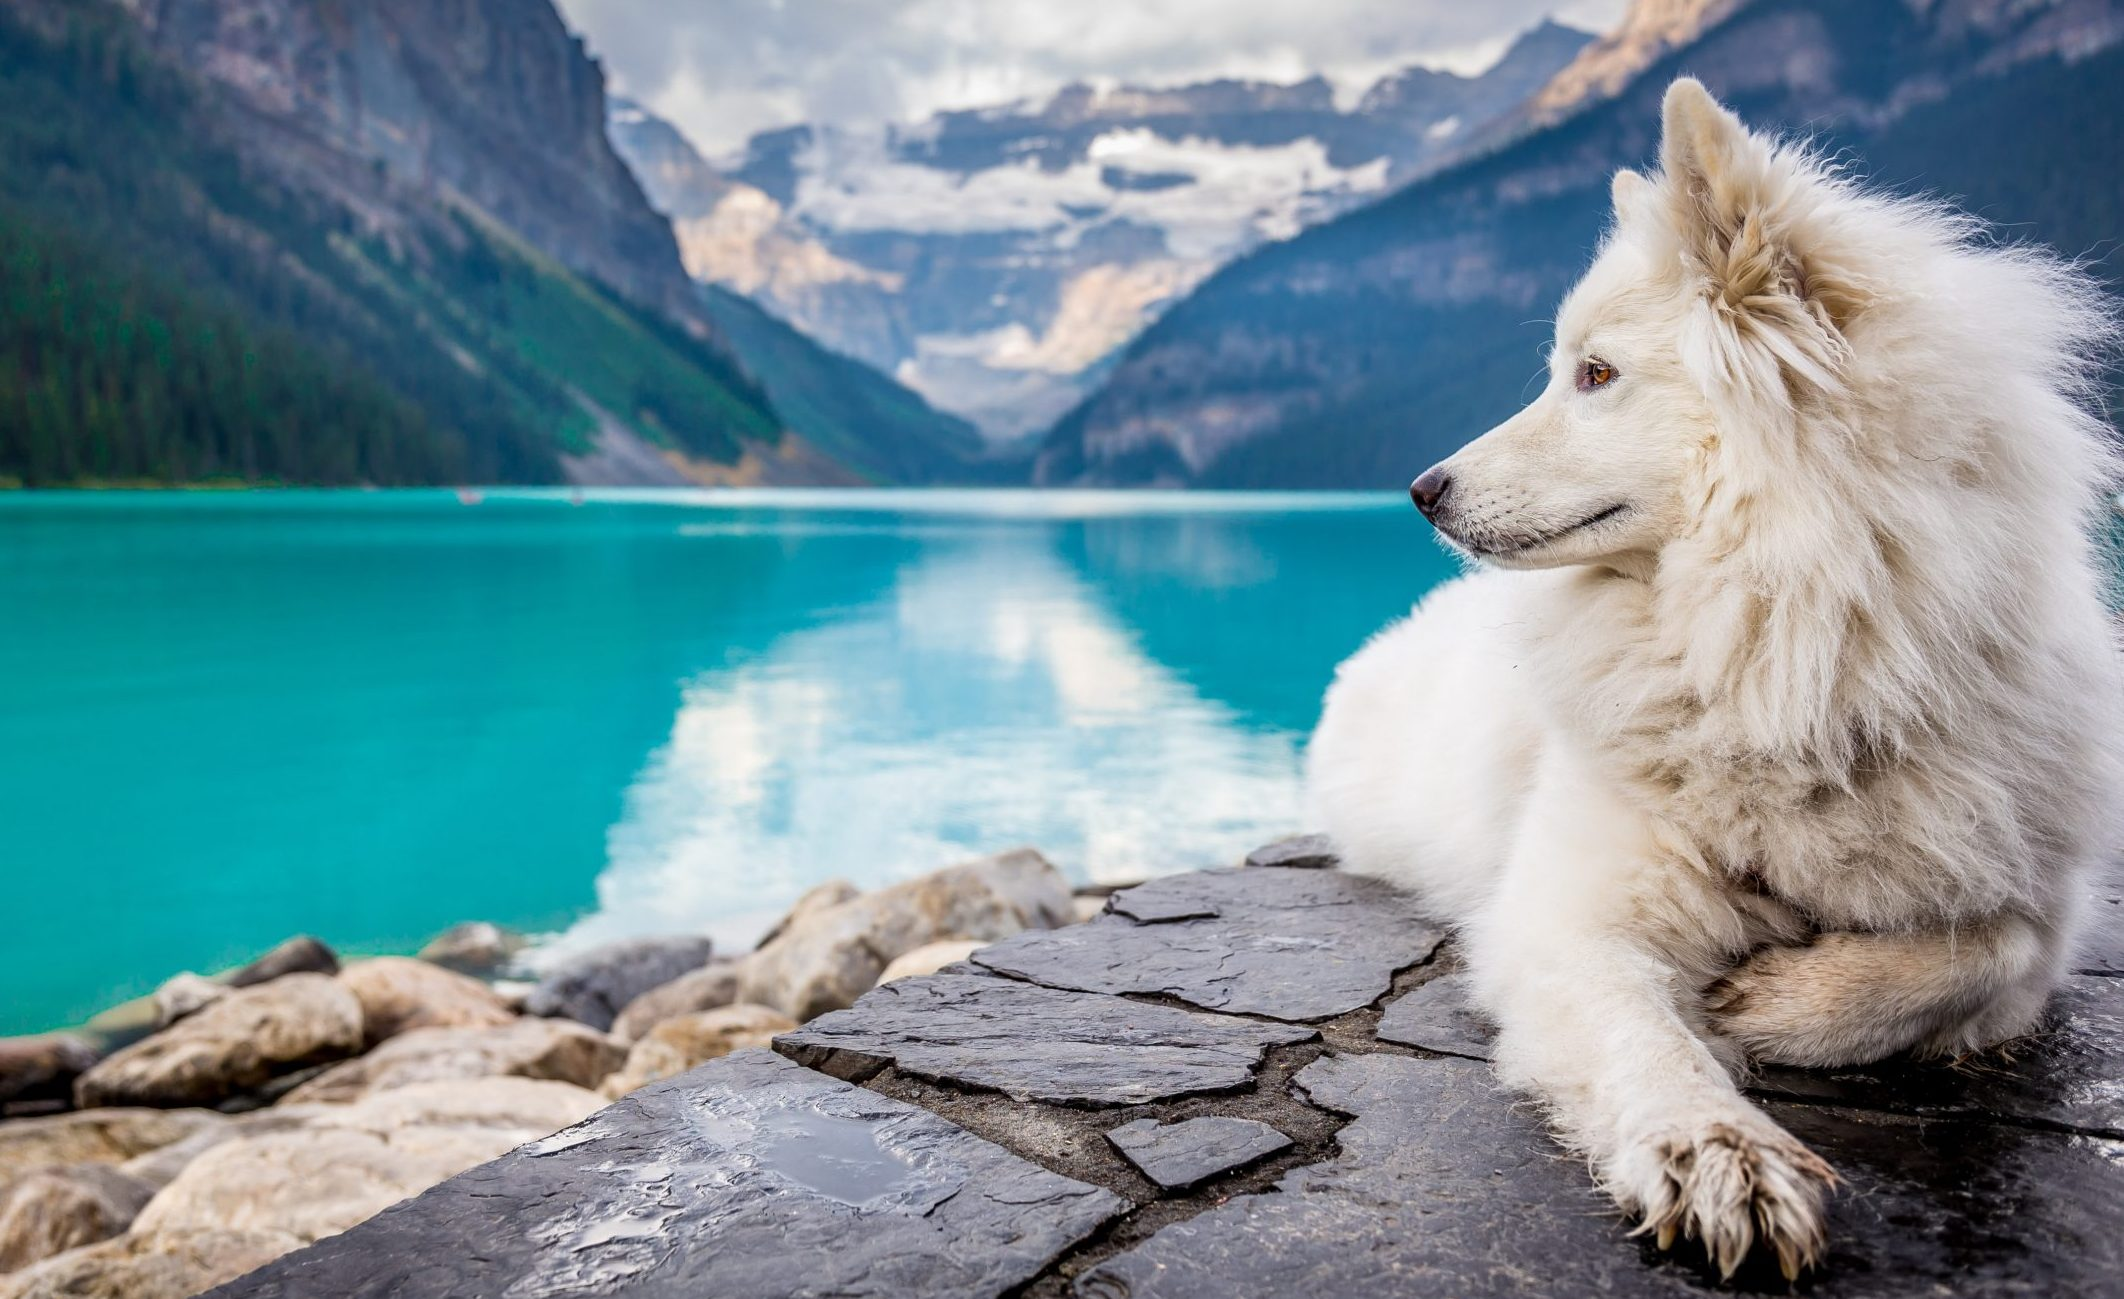 samoyed dog sitting overlooking a placid turquose lake with mountains in the background